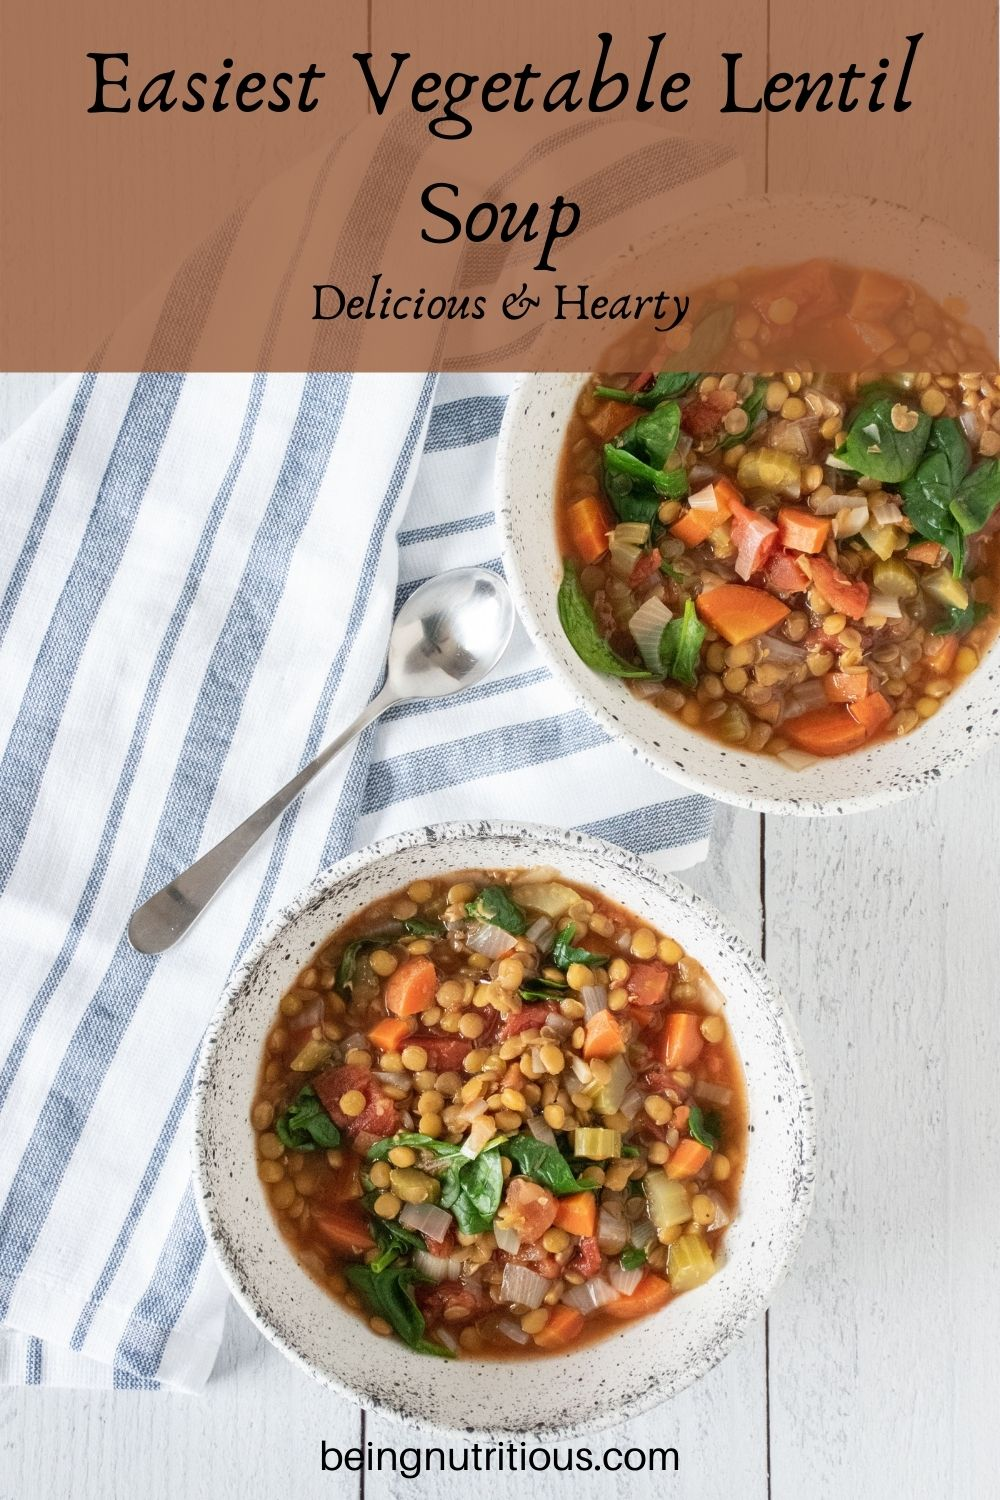 Lentil soup in a bowl. Text overlay: Easiest Vegetable Lentil soup; delicious and hearty.